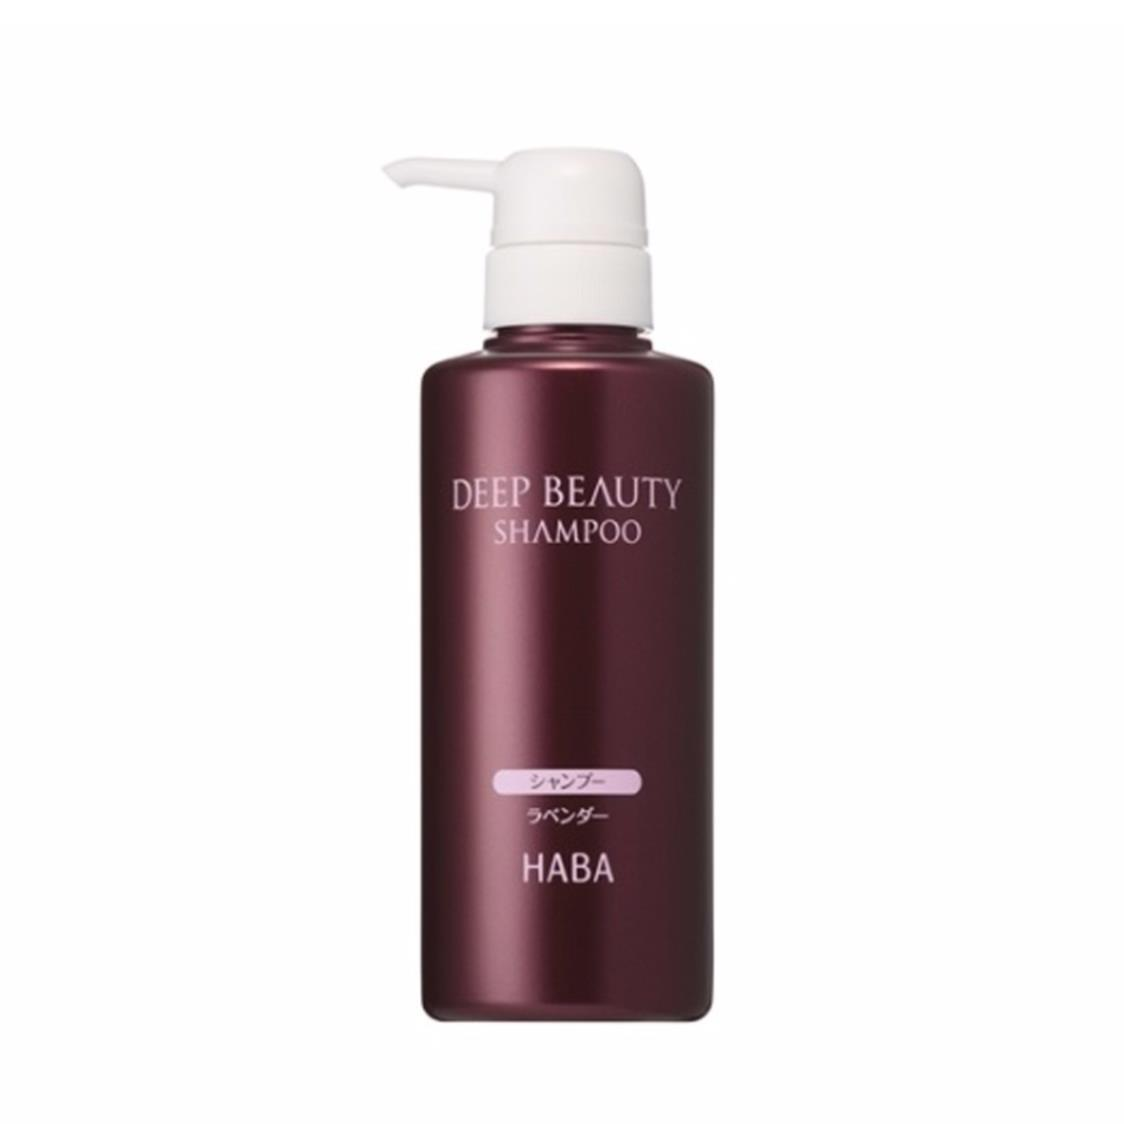 Deep Beauty Shampoo 350ml